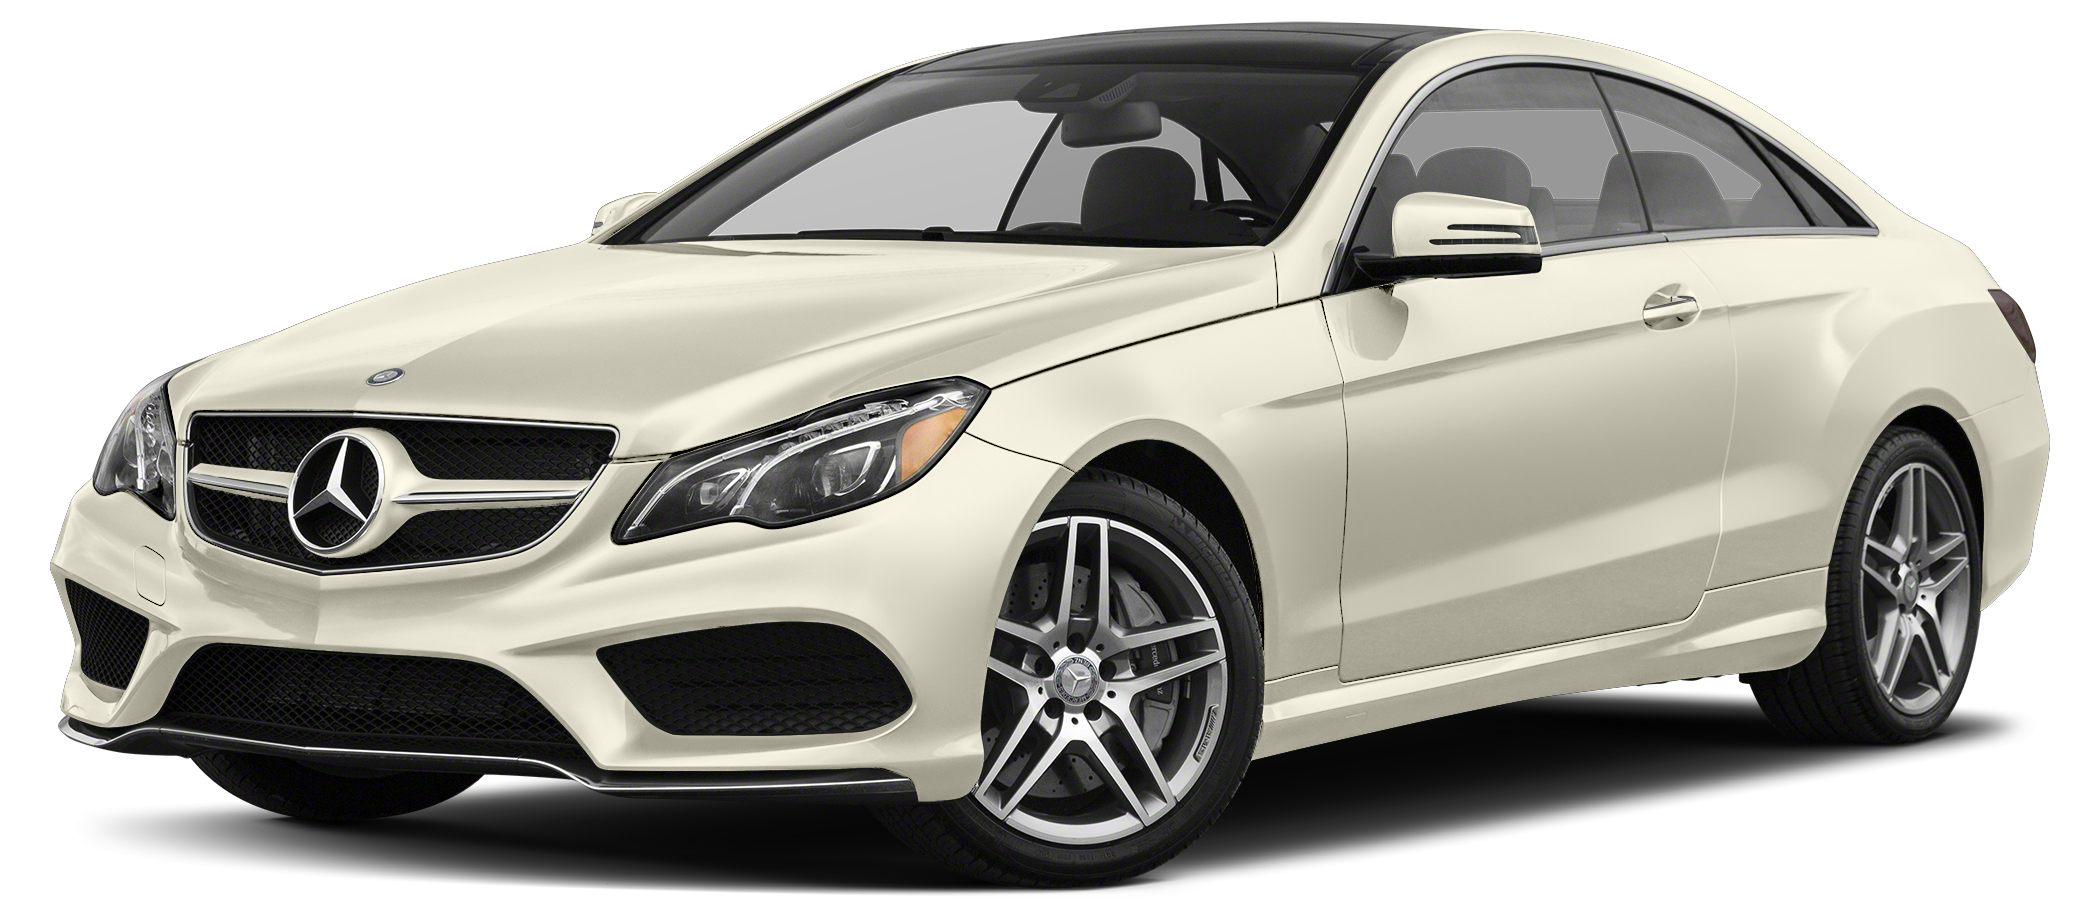 2014 MERCEDES E-Class E550 This 2014 E550 Sport Coupe is a one owner car just off lease Beautiful